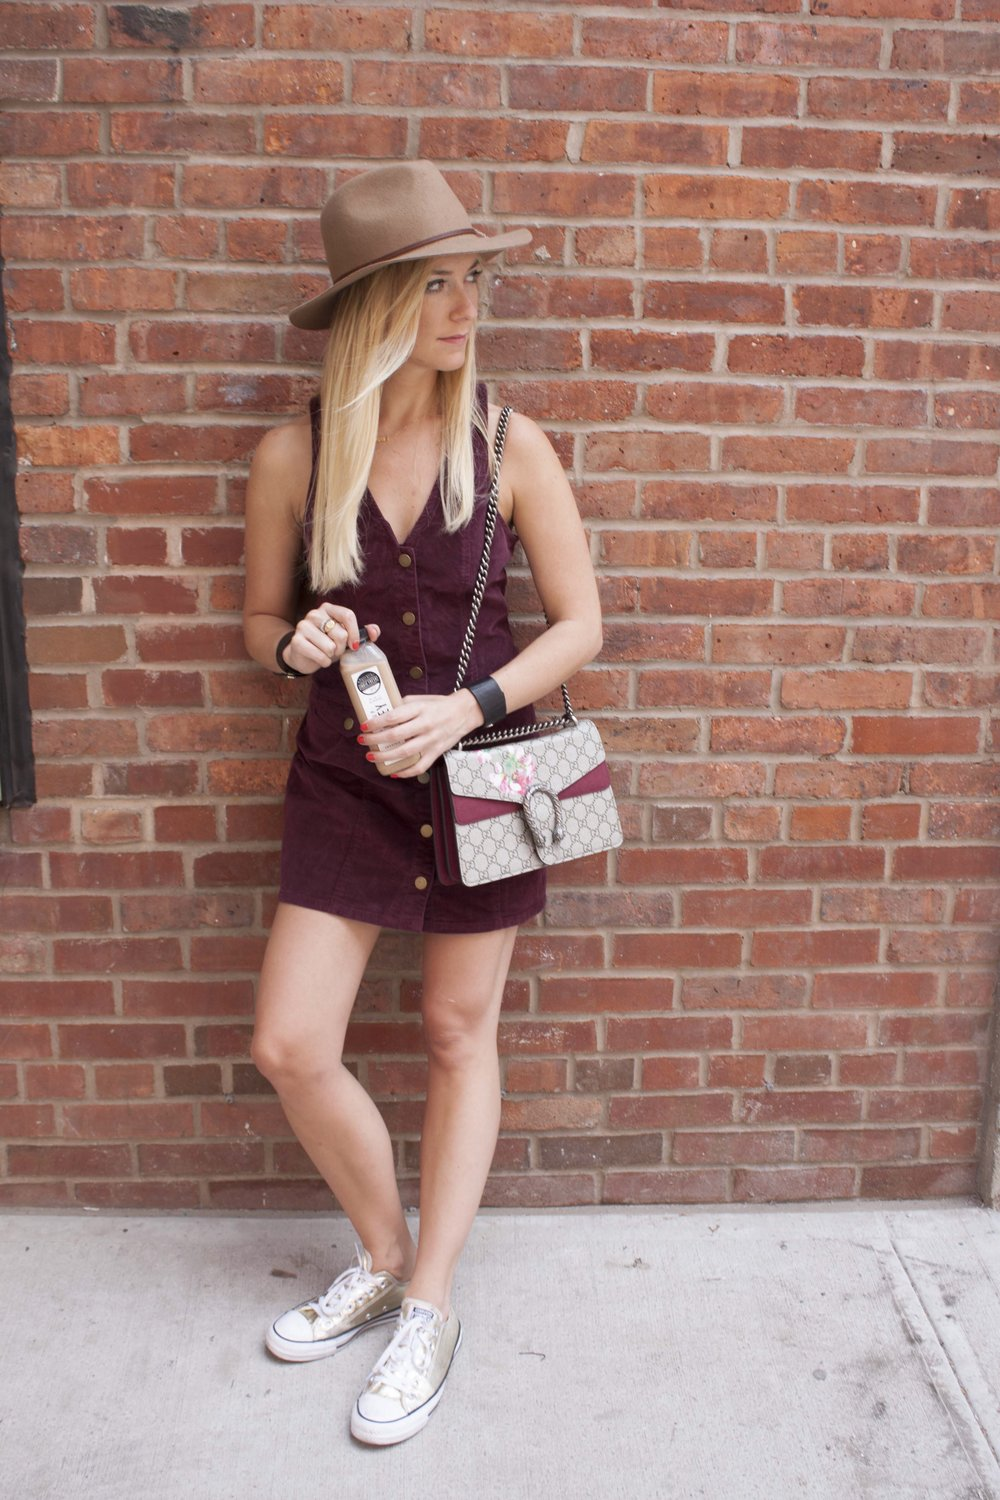 Dress: Urban Outfitters, Hat: Brixton, Bag: Gucci, Leather Wristcuffs: Rendor+Steel, Sneakers: Converse